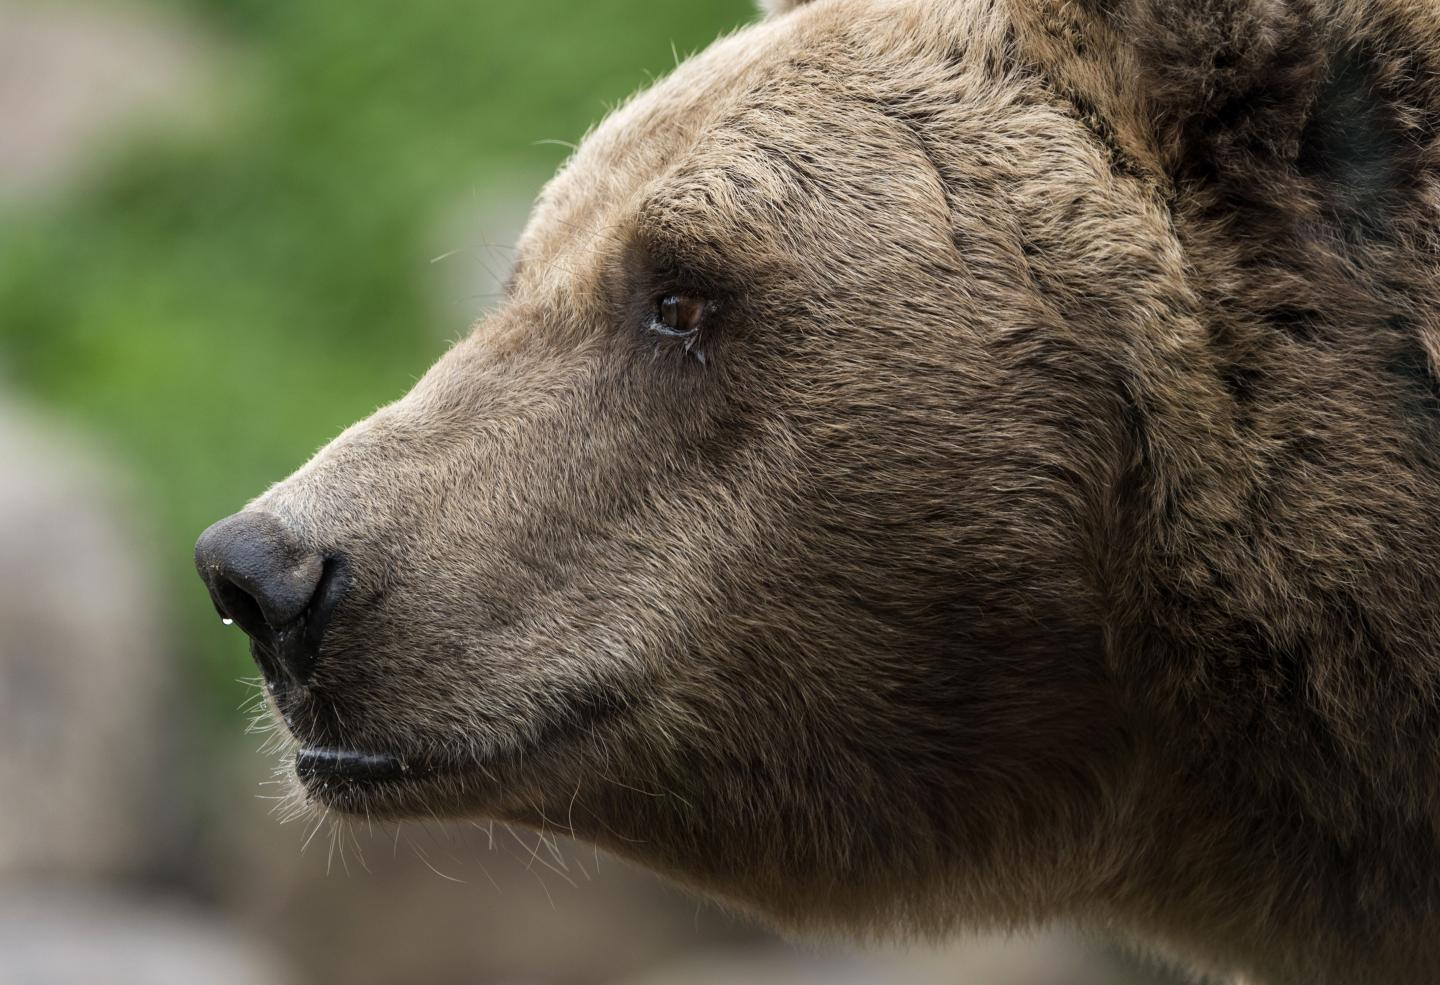 The 3.5 million-year-old bear fossils revealed cavities in its teeth from eating too many sweets